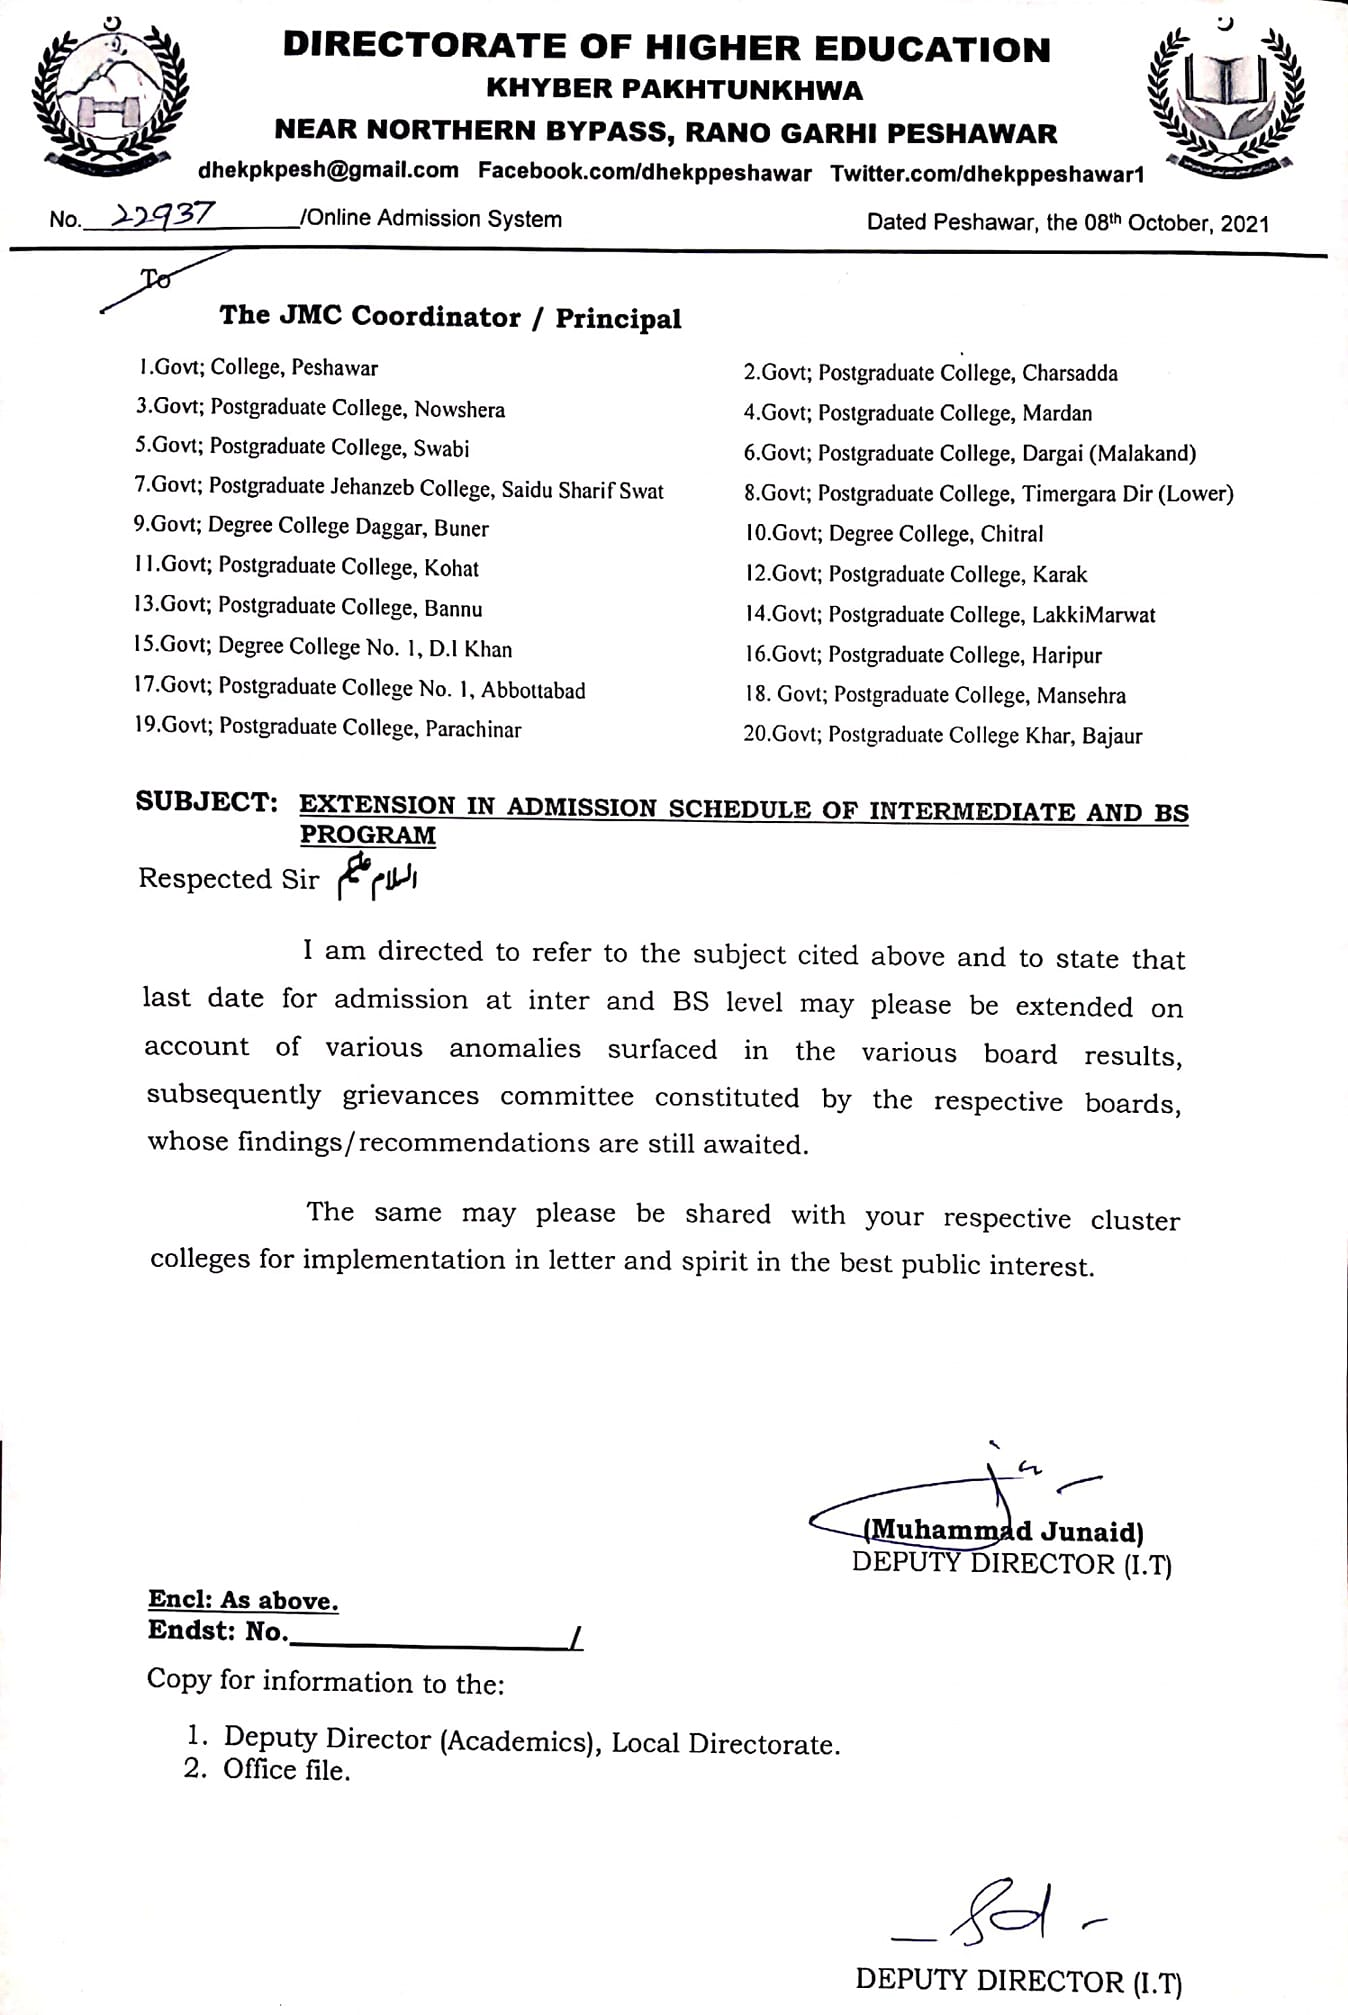 Extension in Admission Schedule Inter and BS Program 2021 KPK